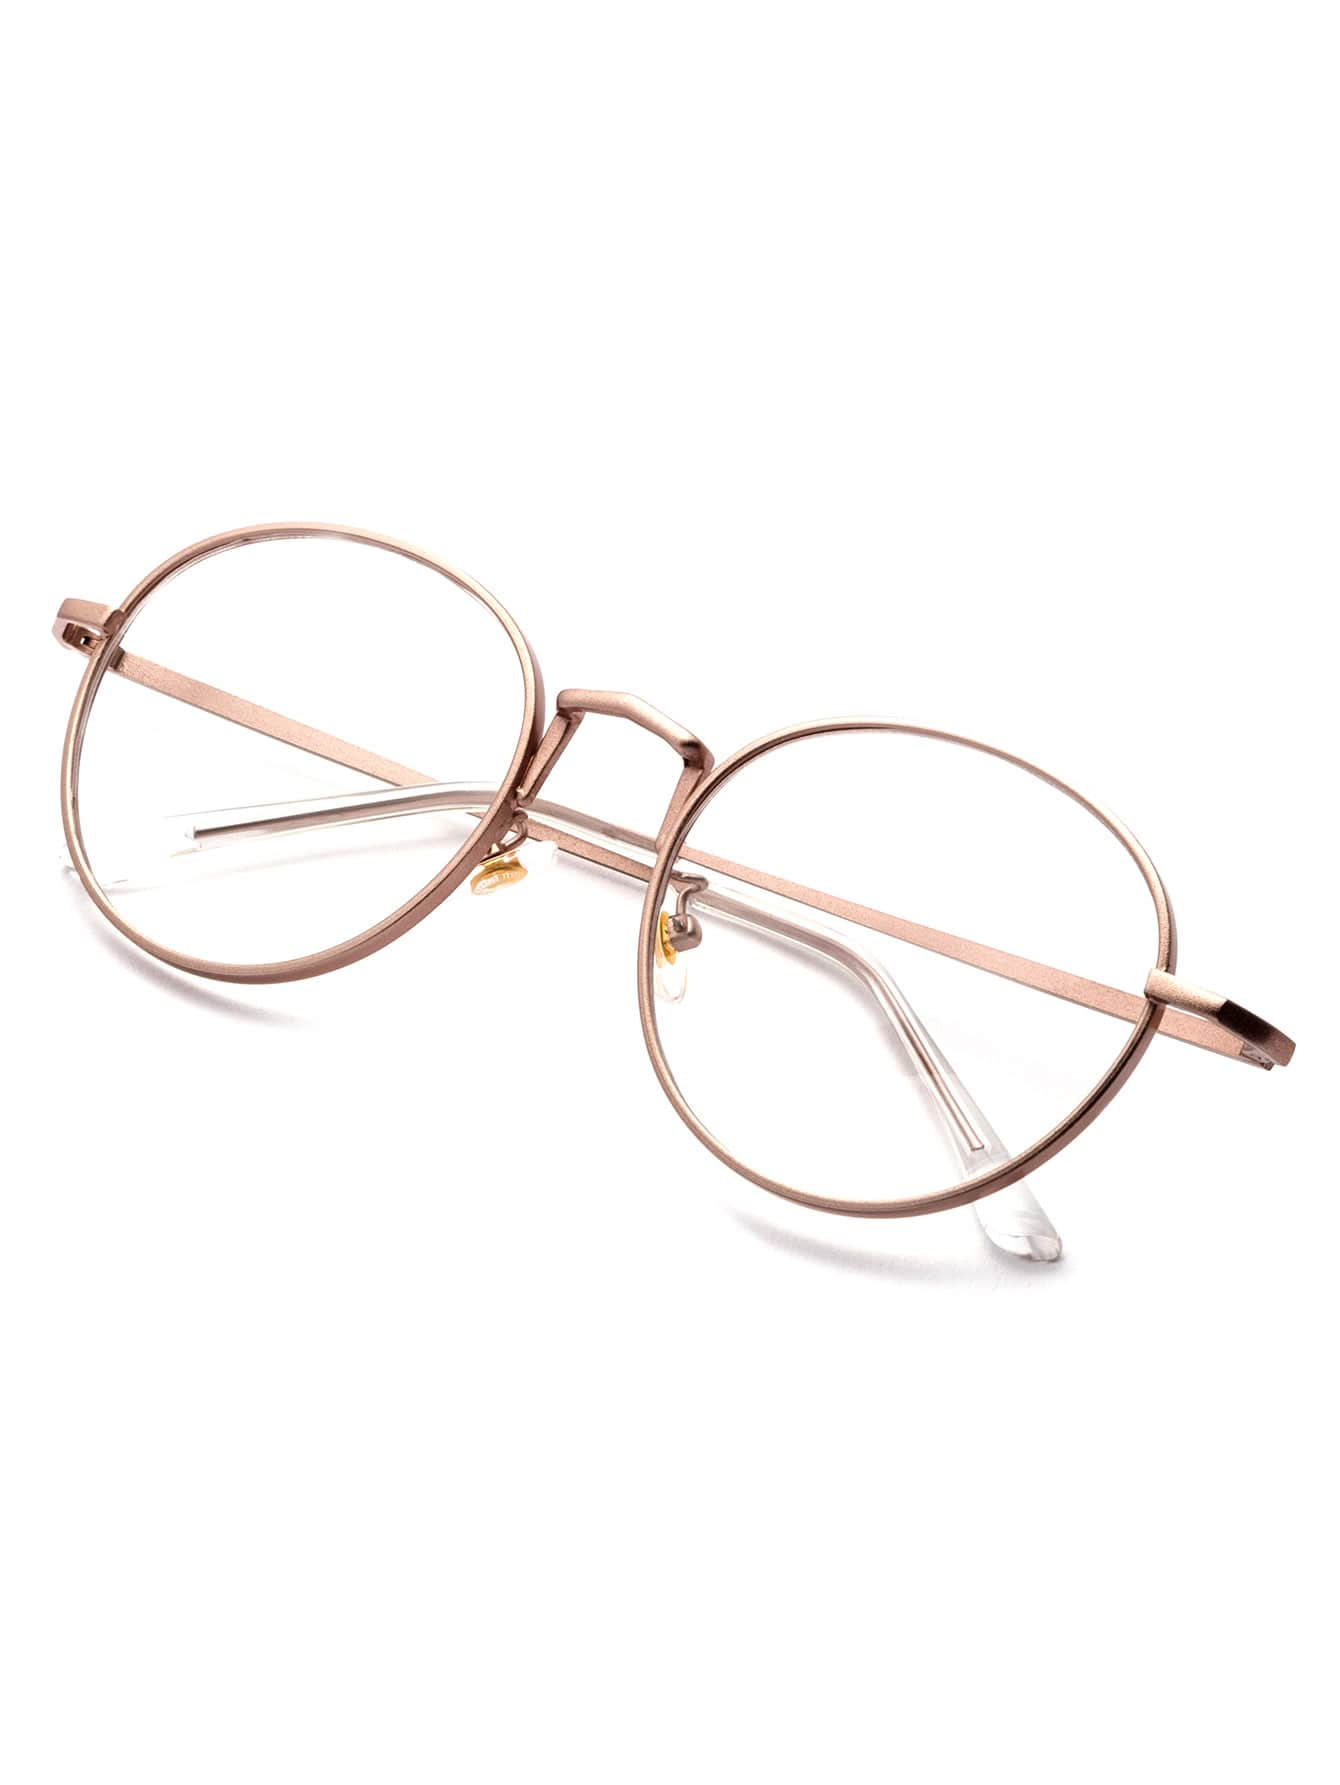 0609b0a94d1 Clear Glasses Gold Frame